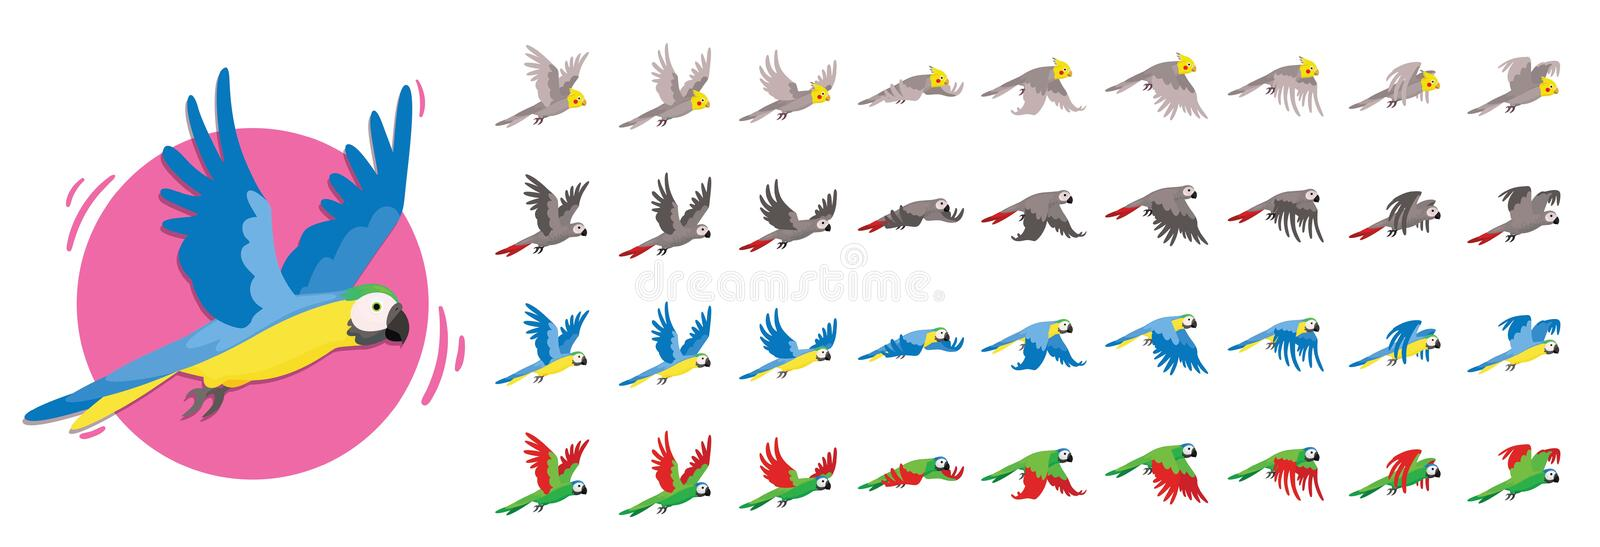 Animations the bird is flying. Parrot Animations. Set of Sprite bird flies. vector illustration